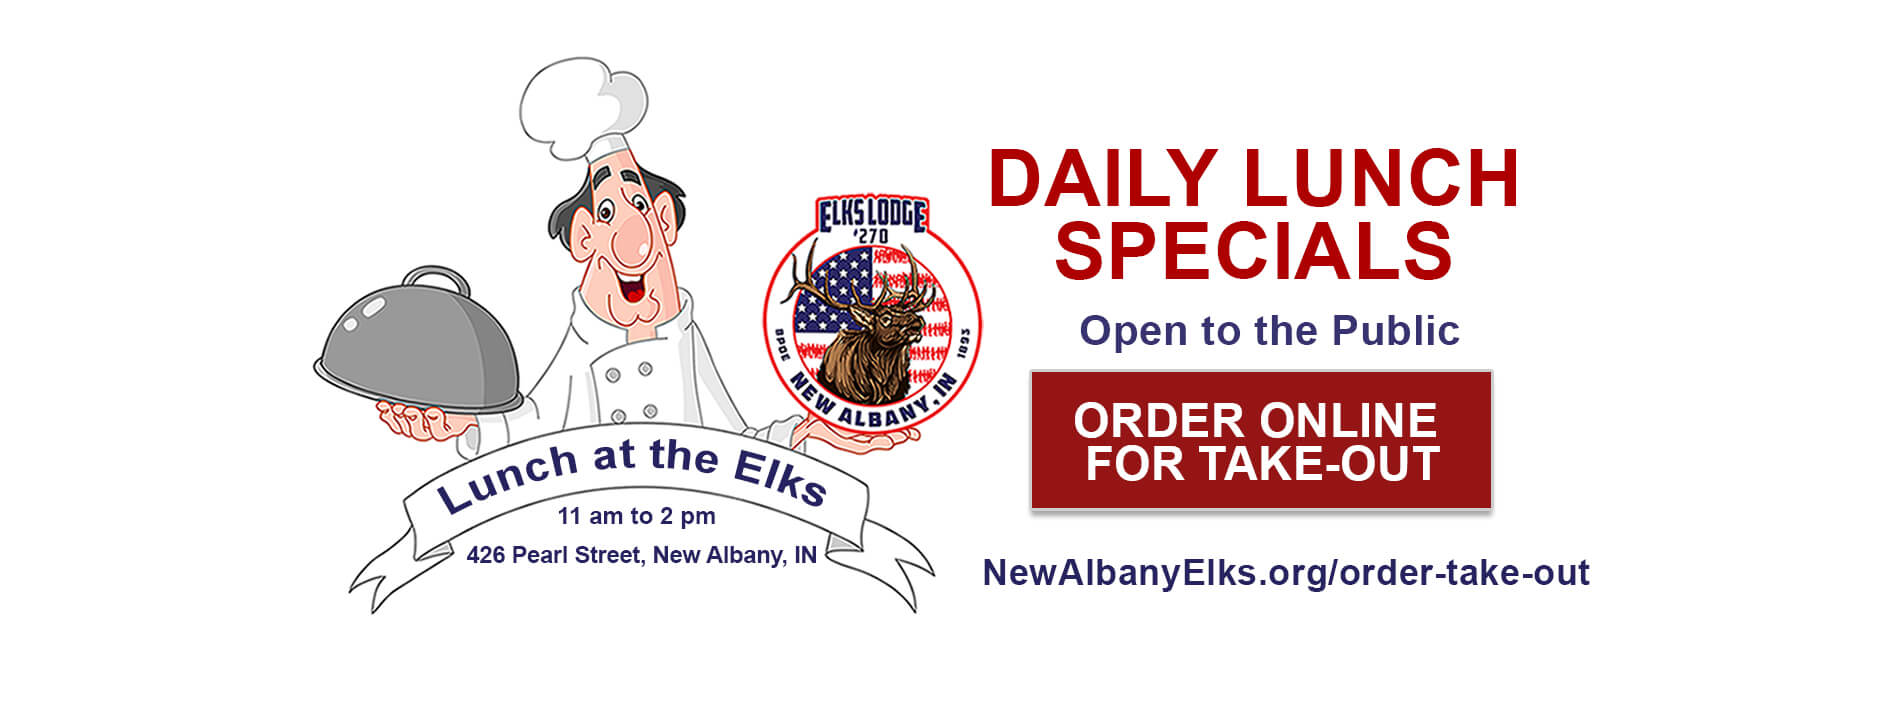 Lunch specials at New Albany Elks